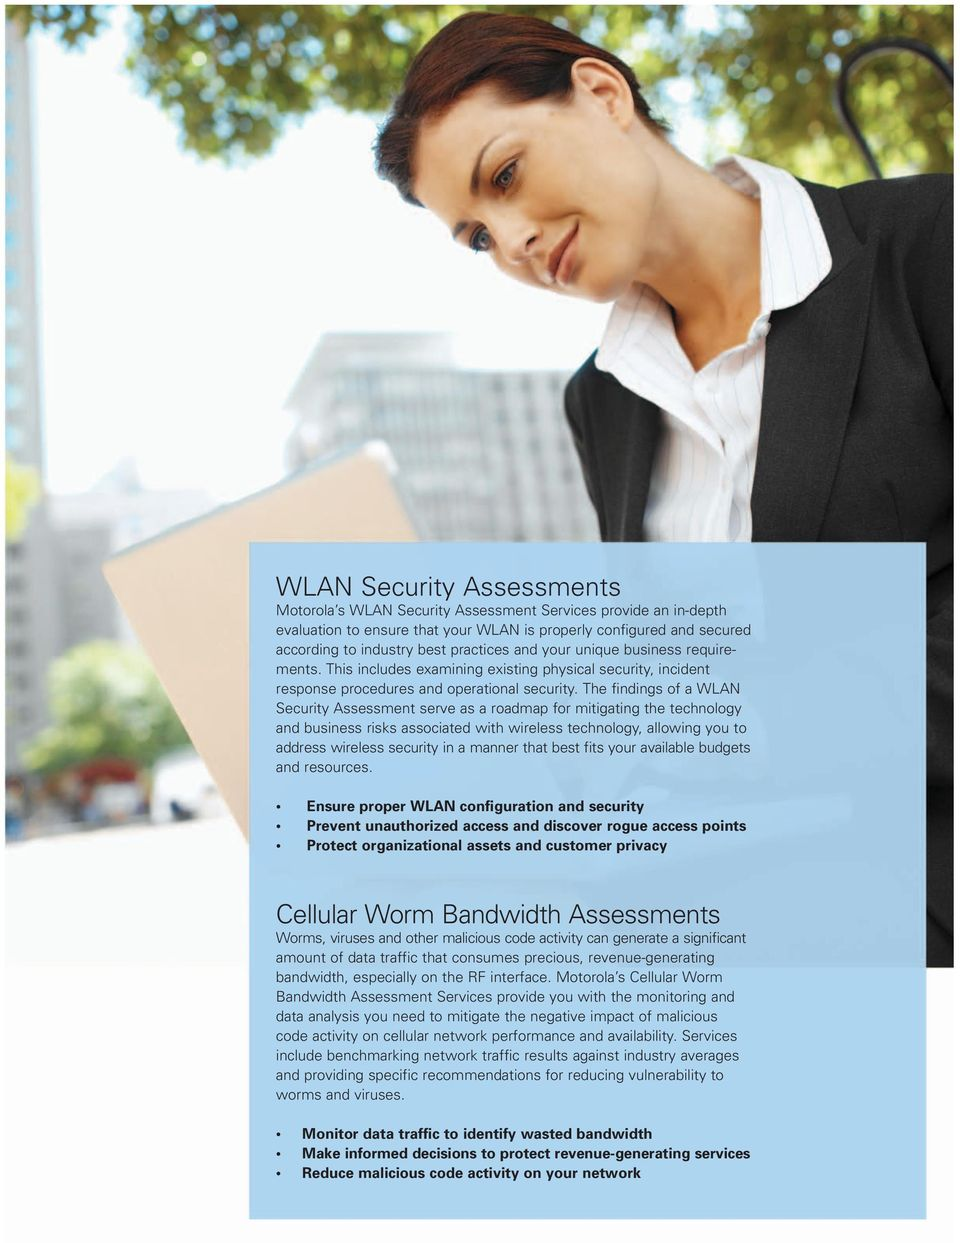 The findings of a WLAN Security Assessment serve as a roadmap for mitigating the technology and business risks associated with wireless technology, allowing you to address wireless security in a